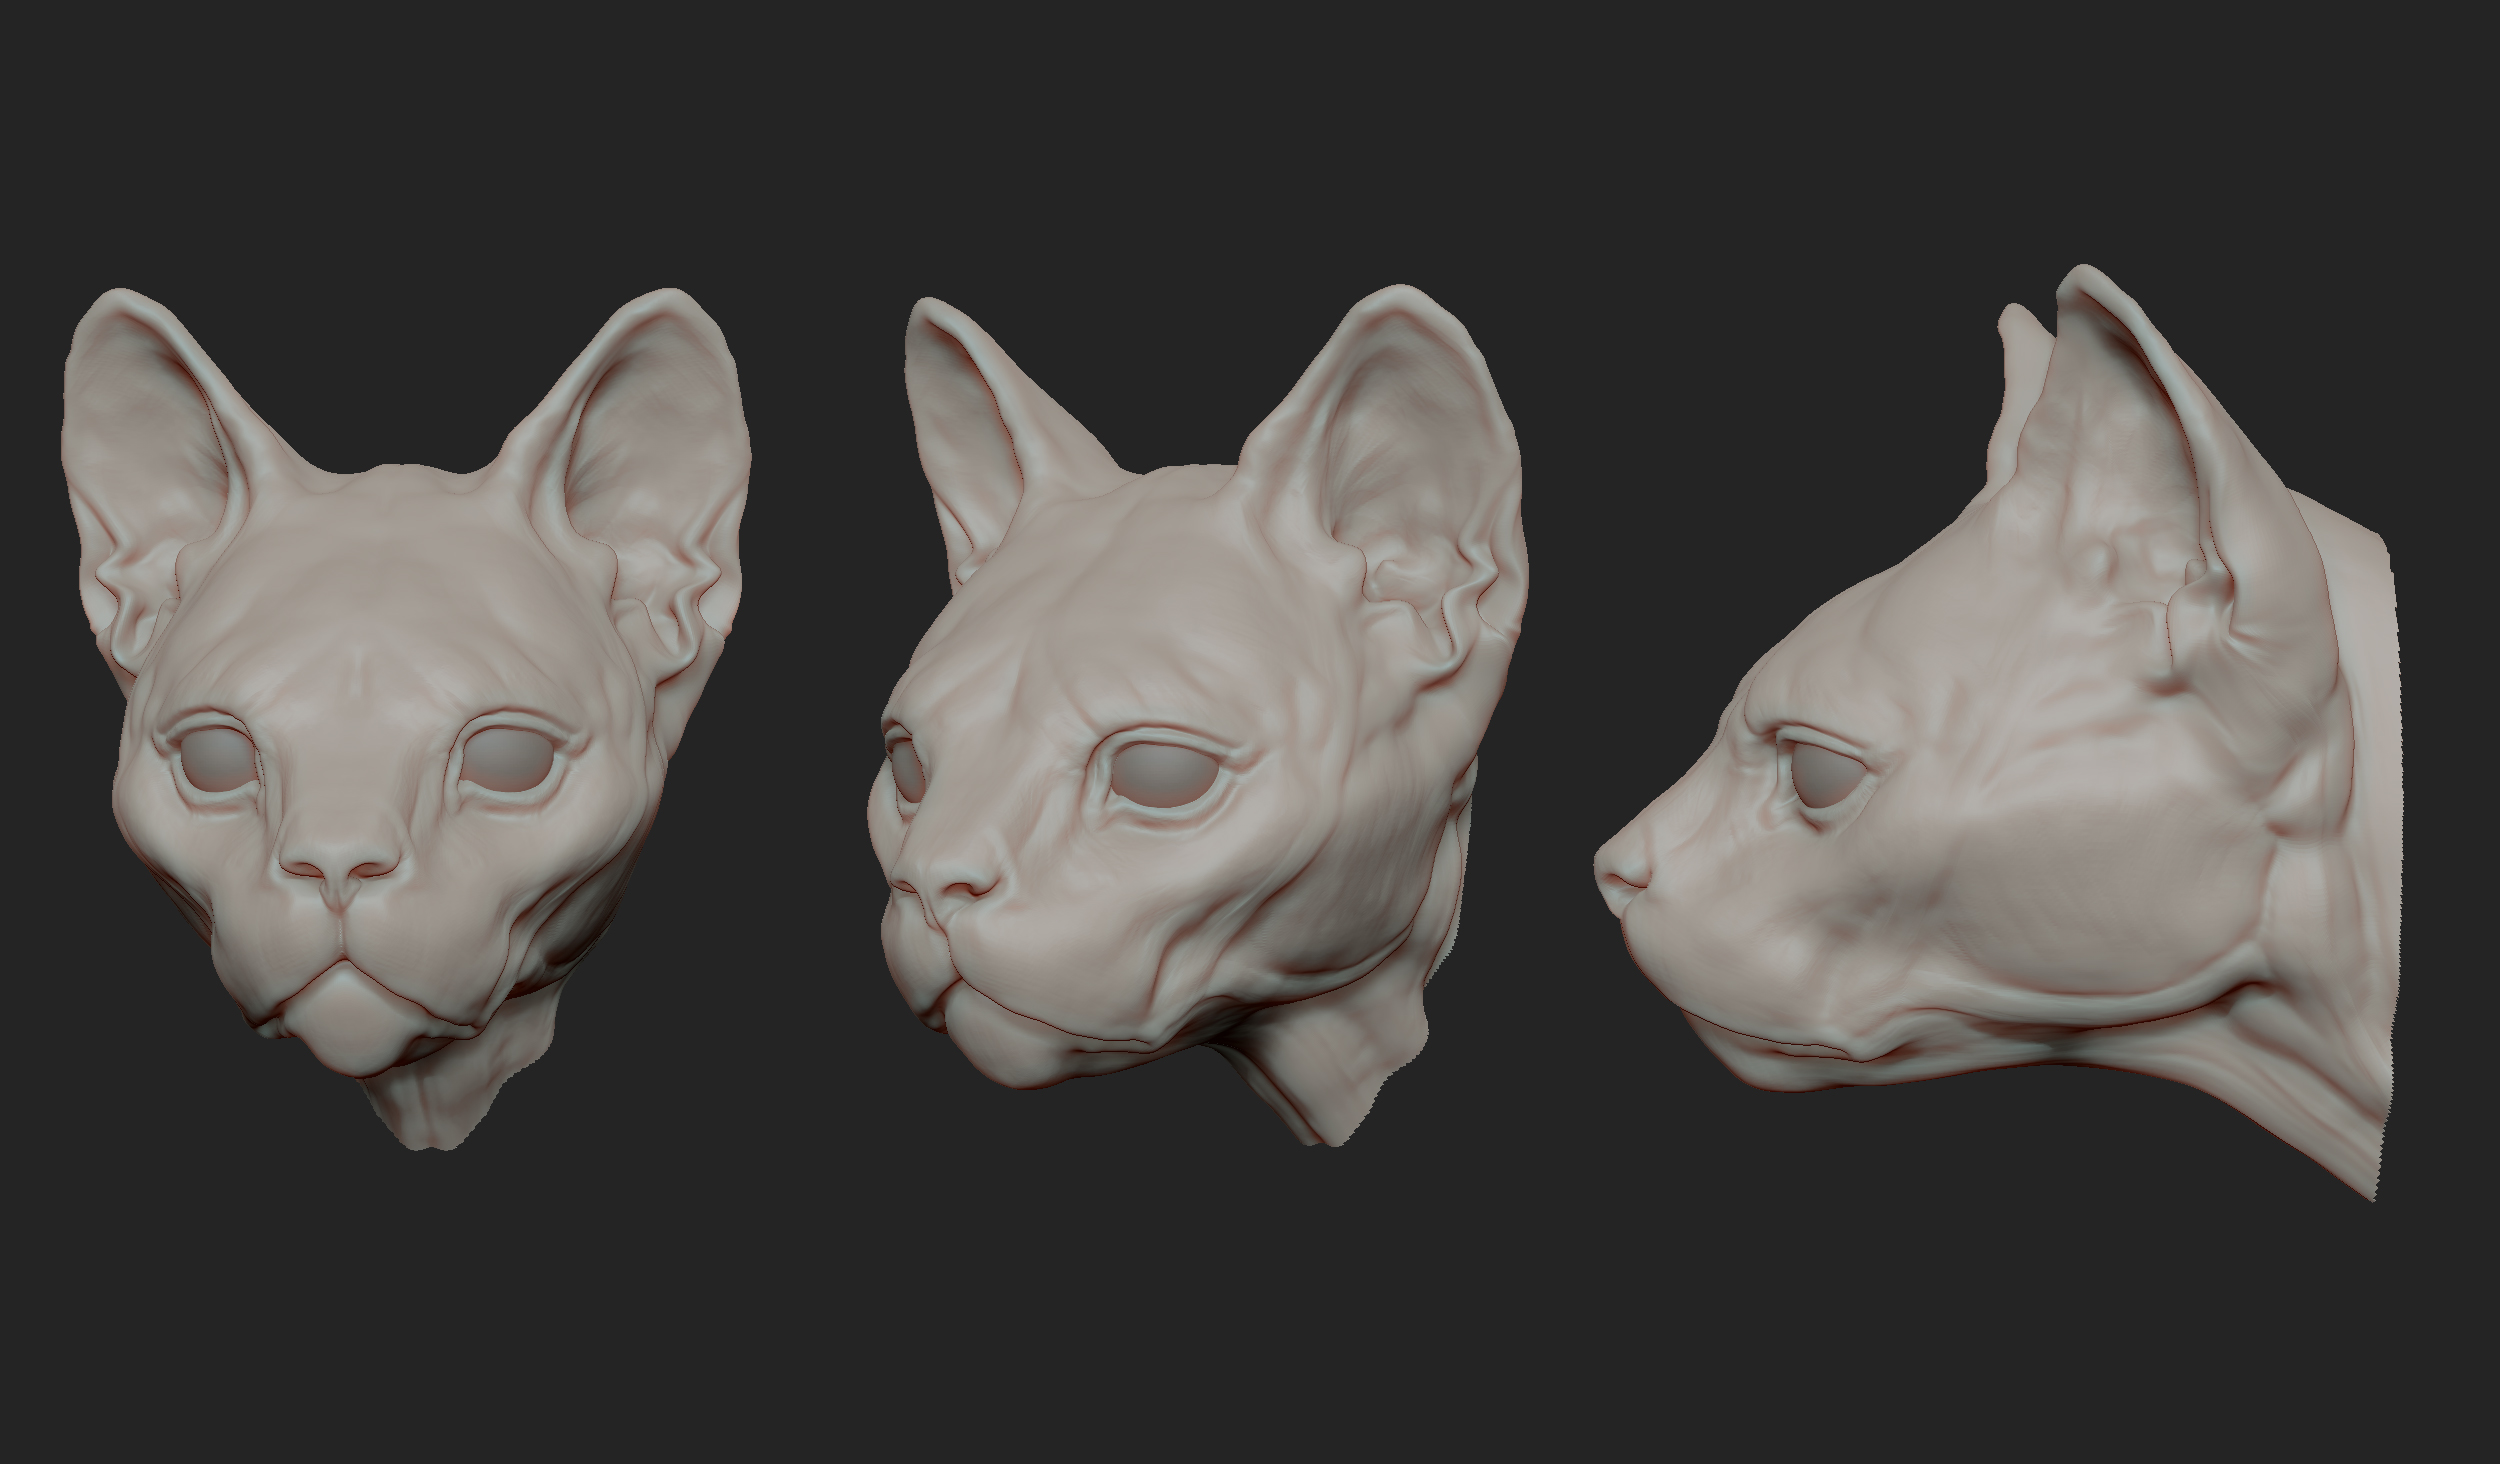 MarcusTrolldenier_SculptingAnatomy_week4_domestic_cat_01.jpg